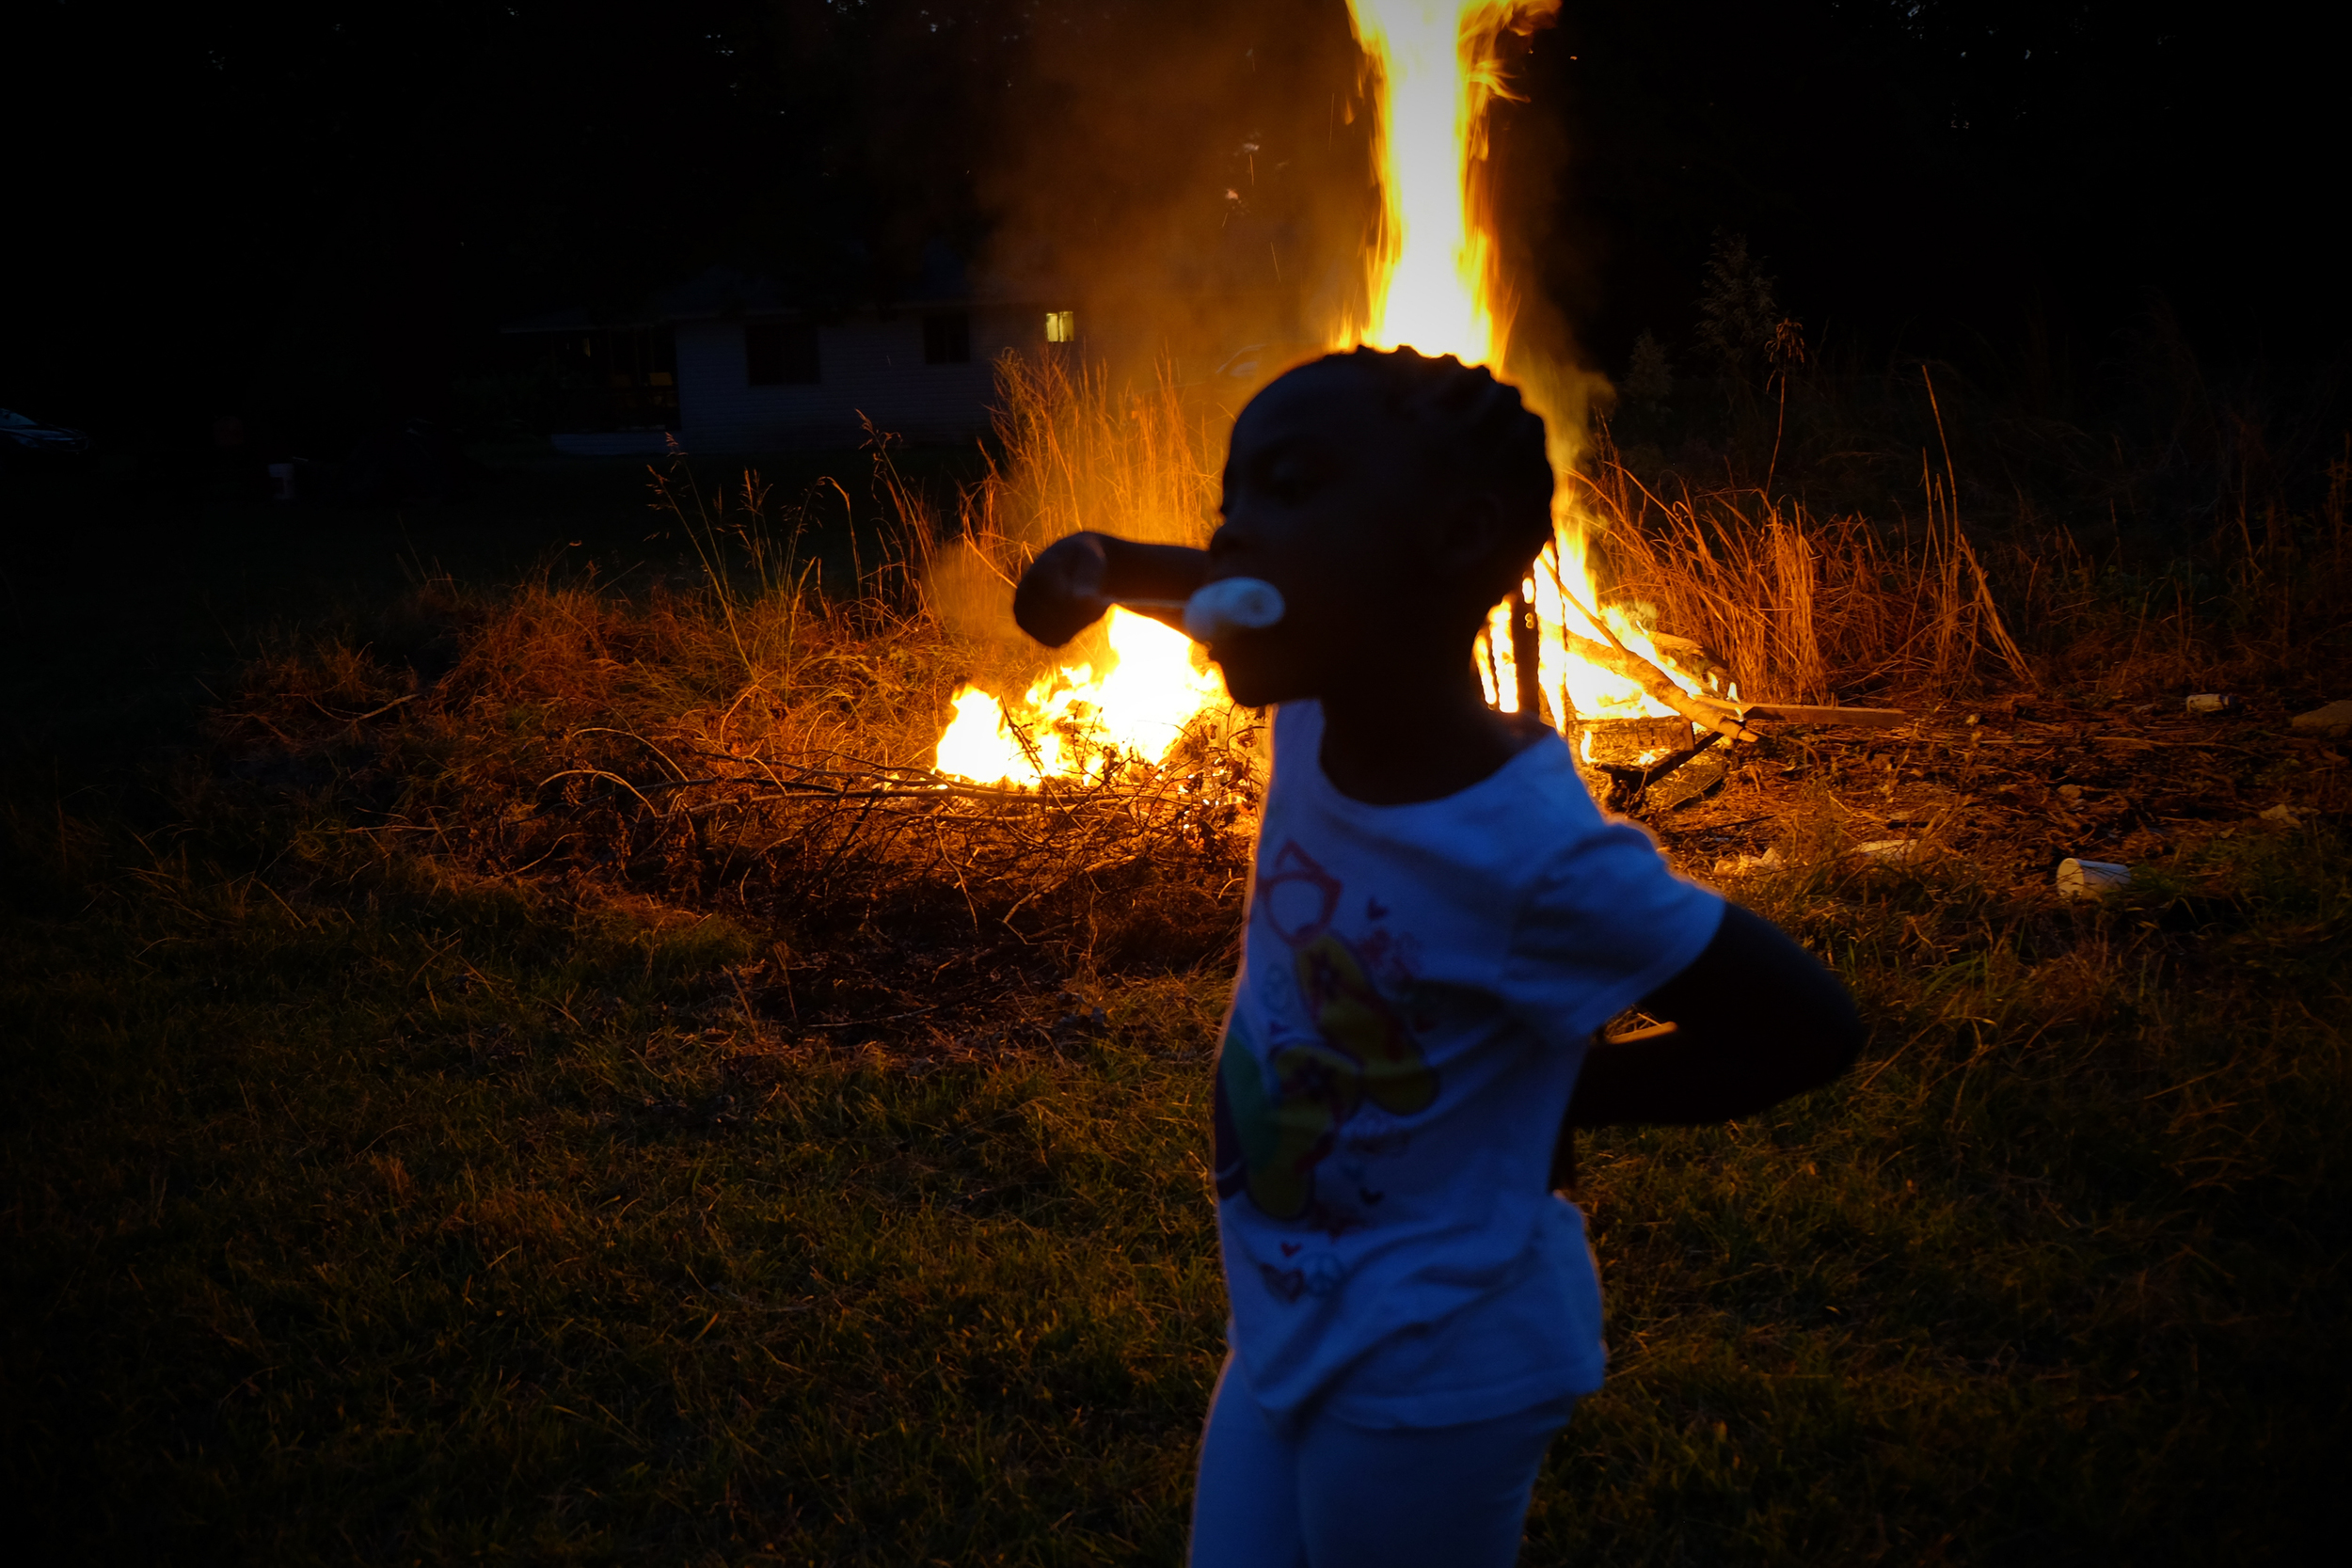 Cousin Miyah devouring marshmallows in front of a bonfire on the family property, Dalark, Arkansas.